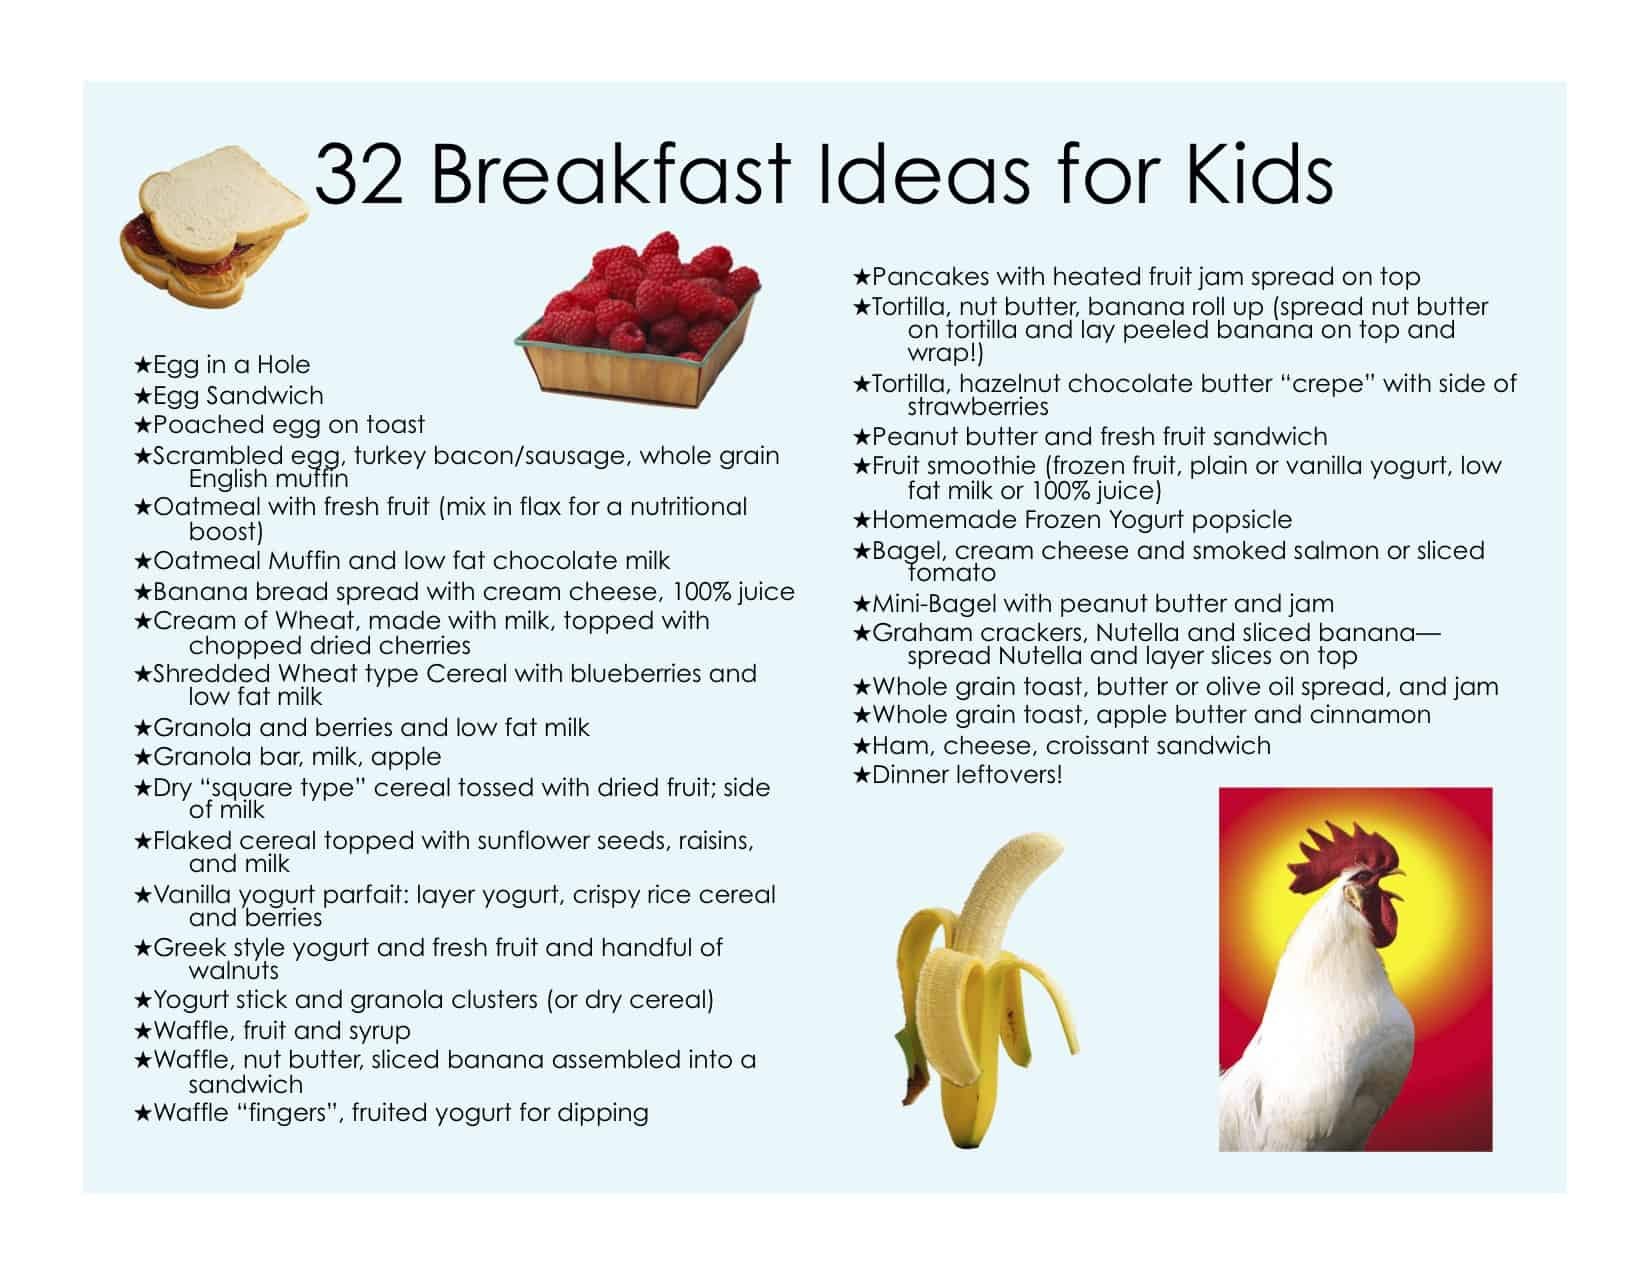 32 Healthy Breakfast Ideas For Kids